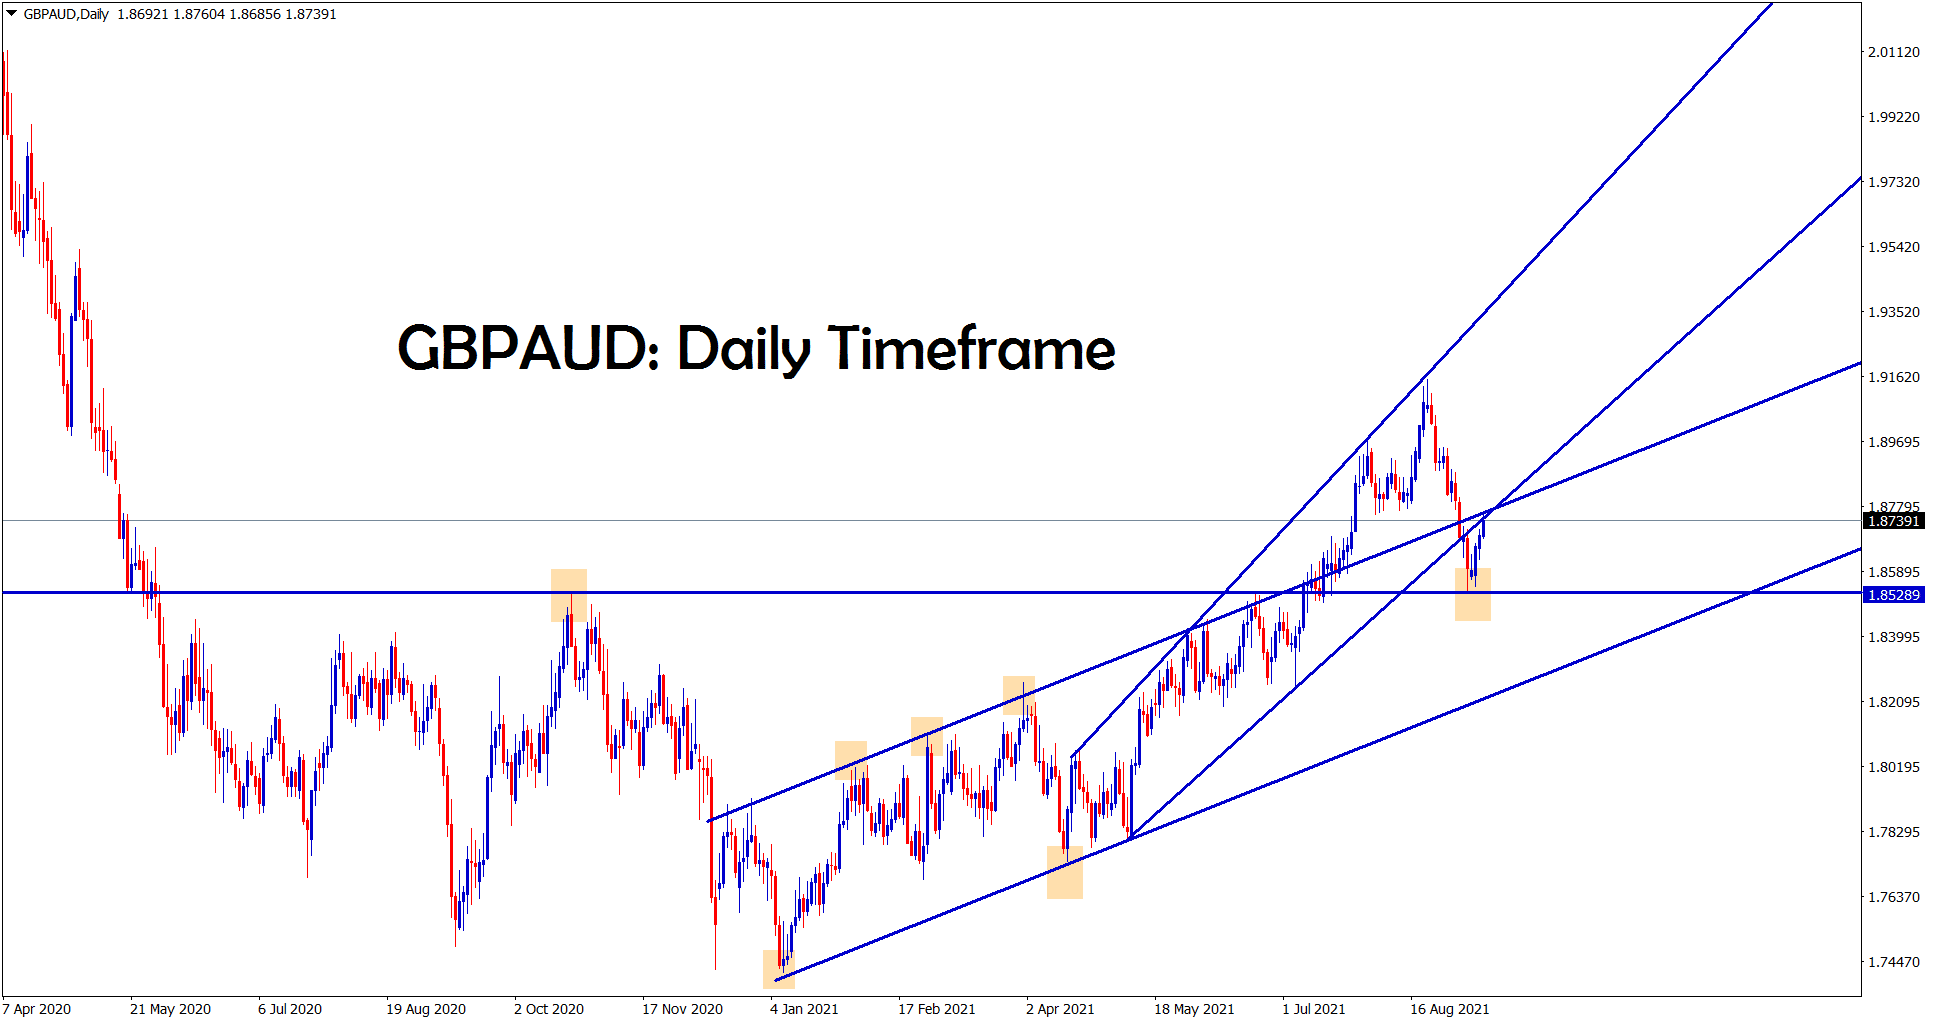 GBPAUD bounces back from the support area